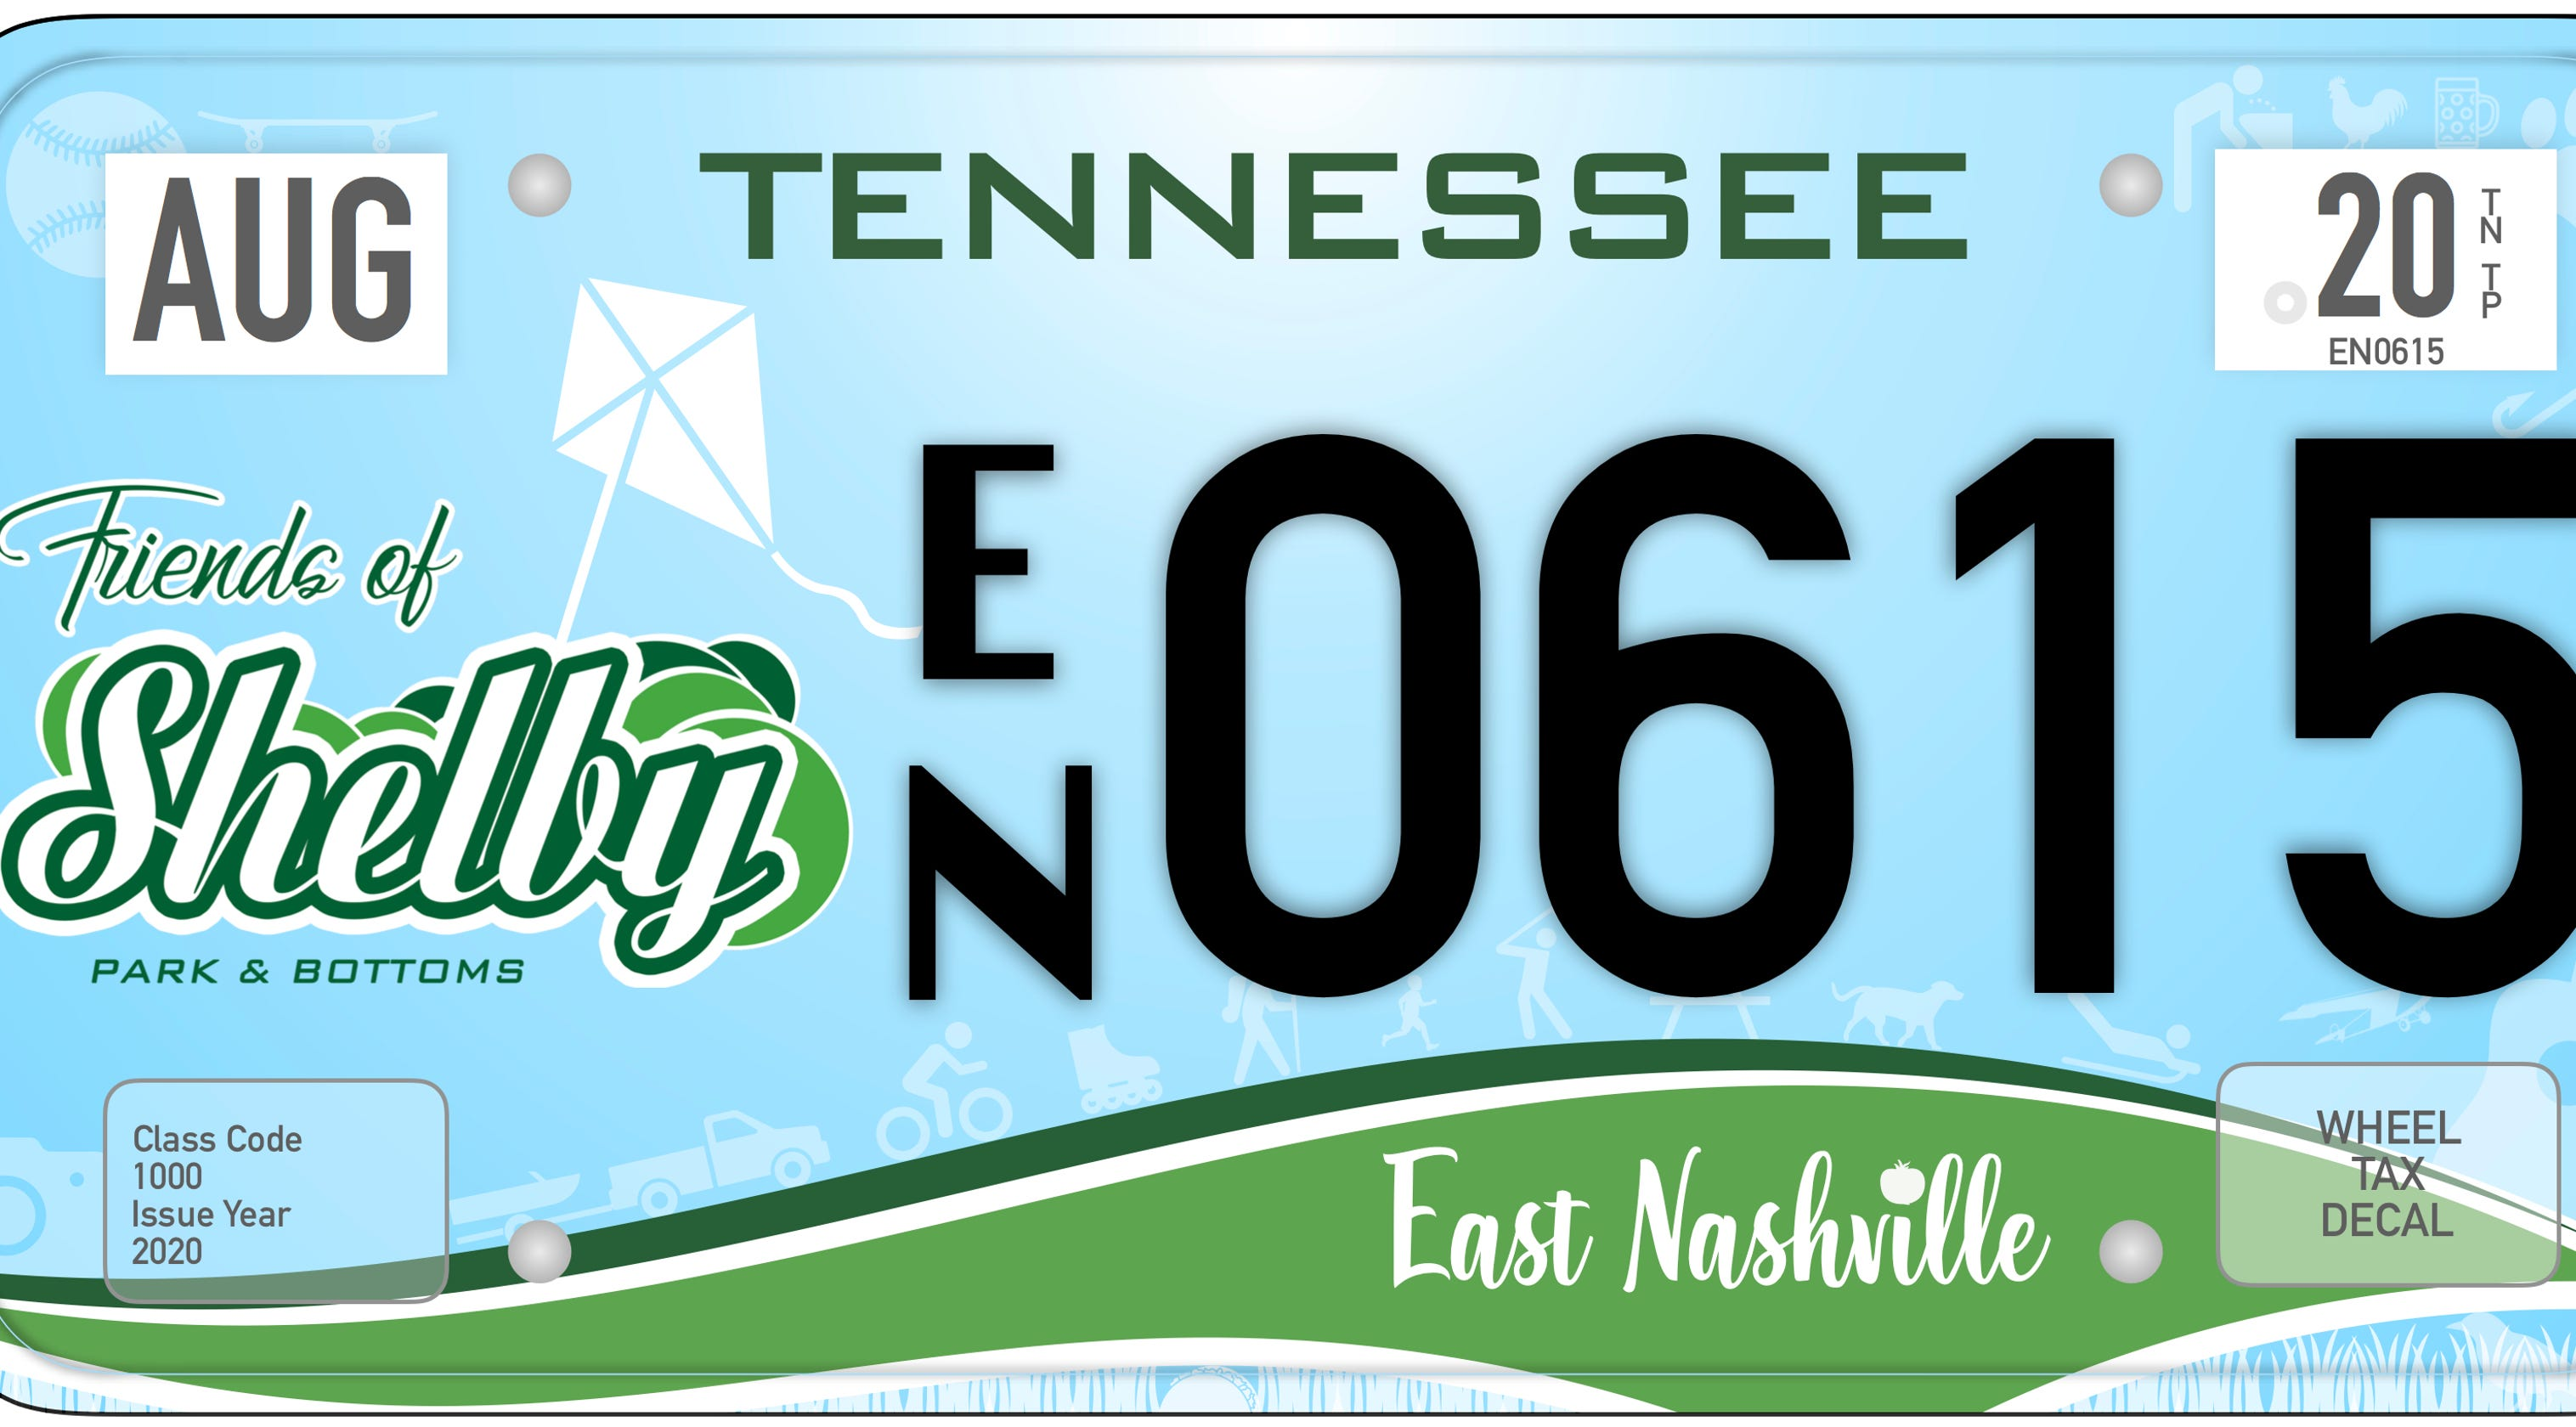 East Nashville license plate: Effort is underway for specialty tags